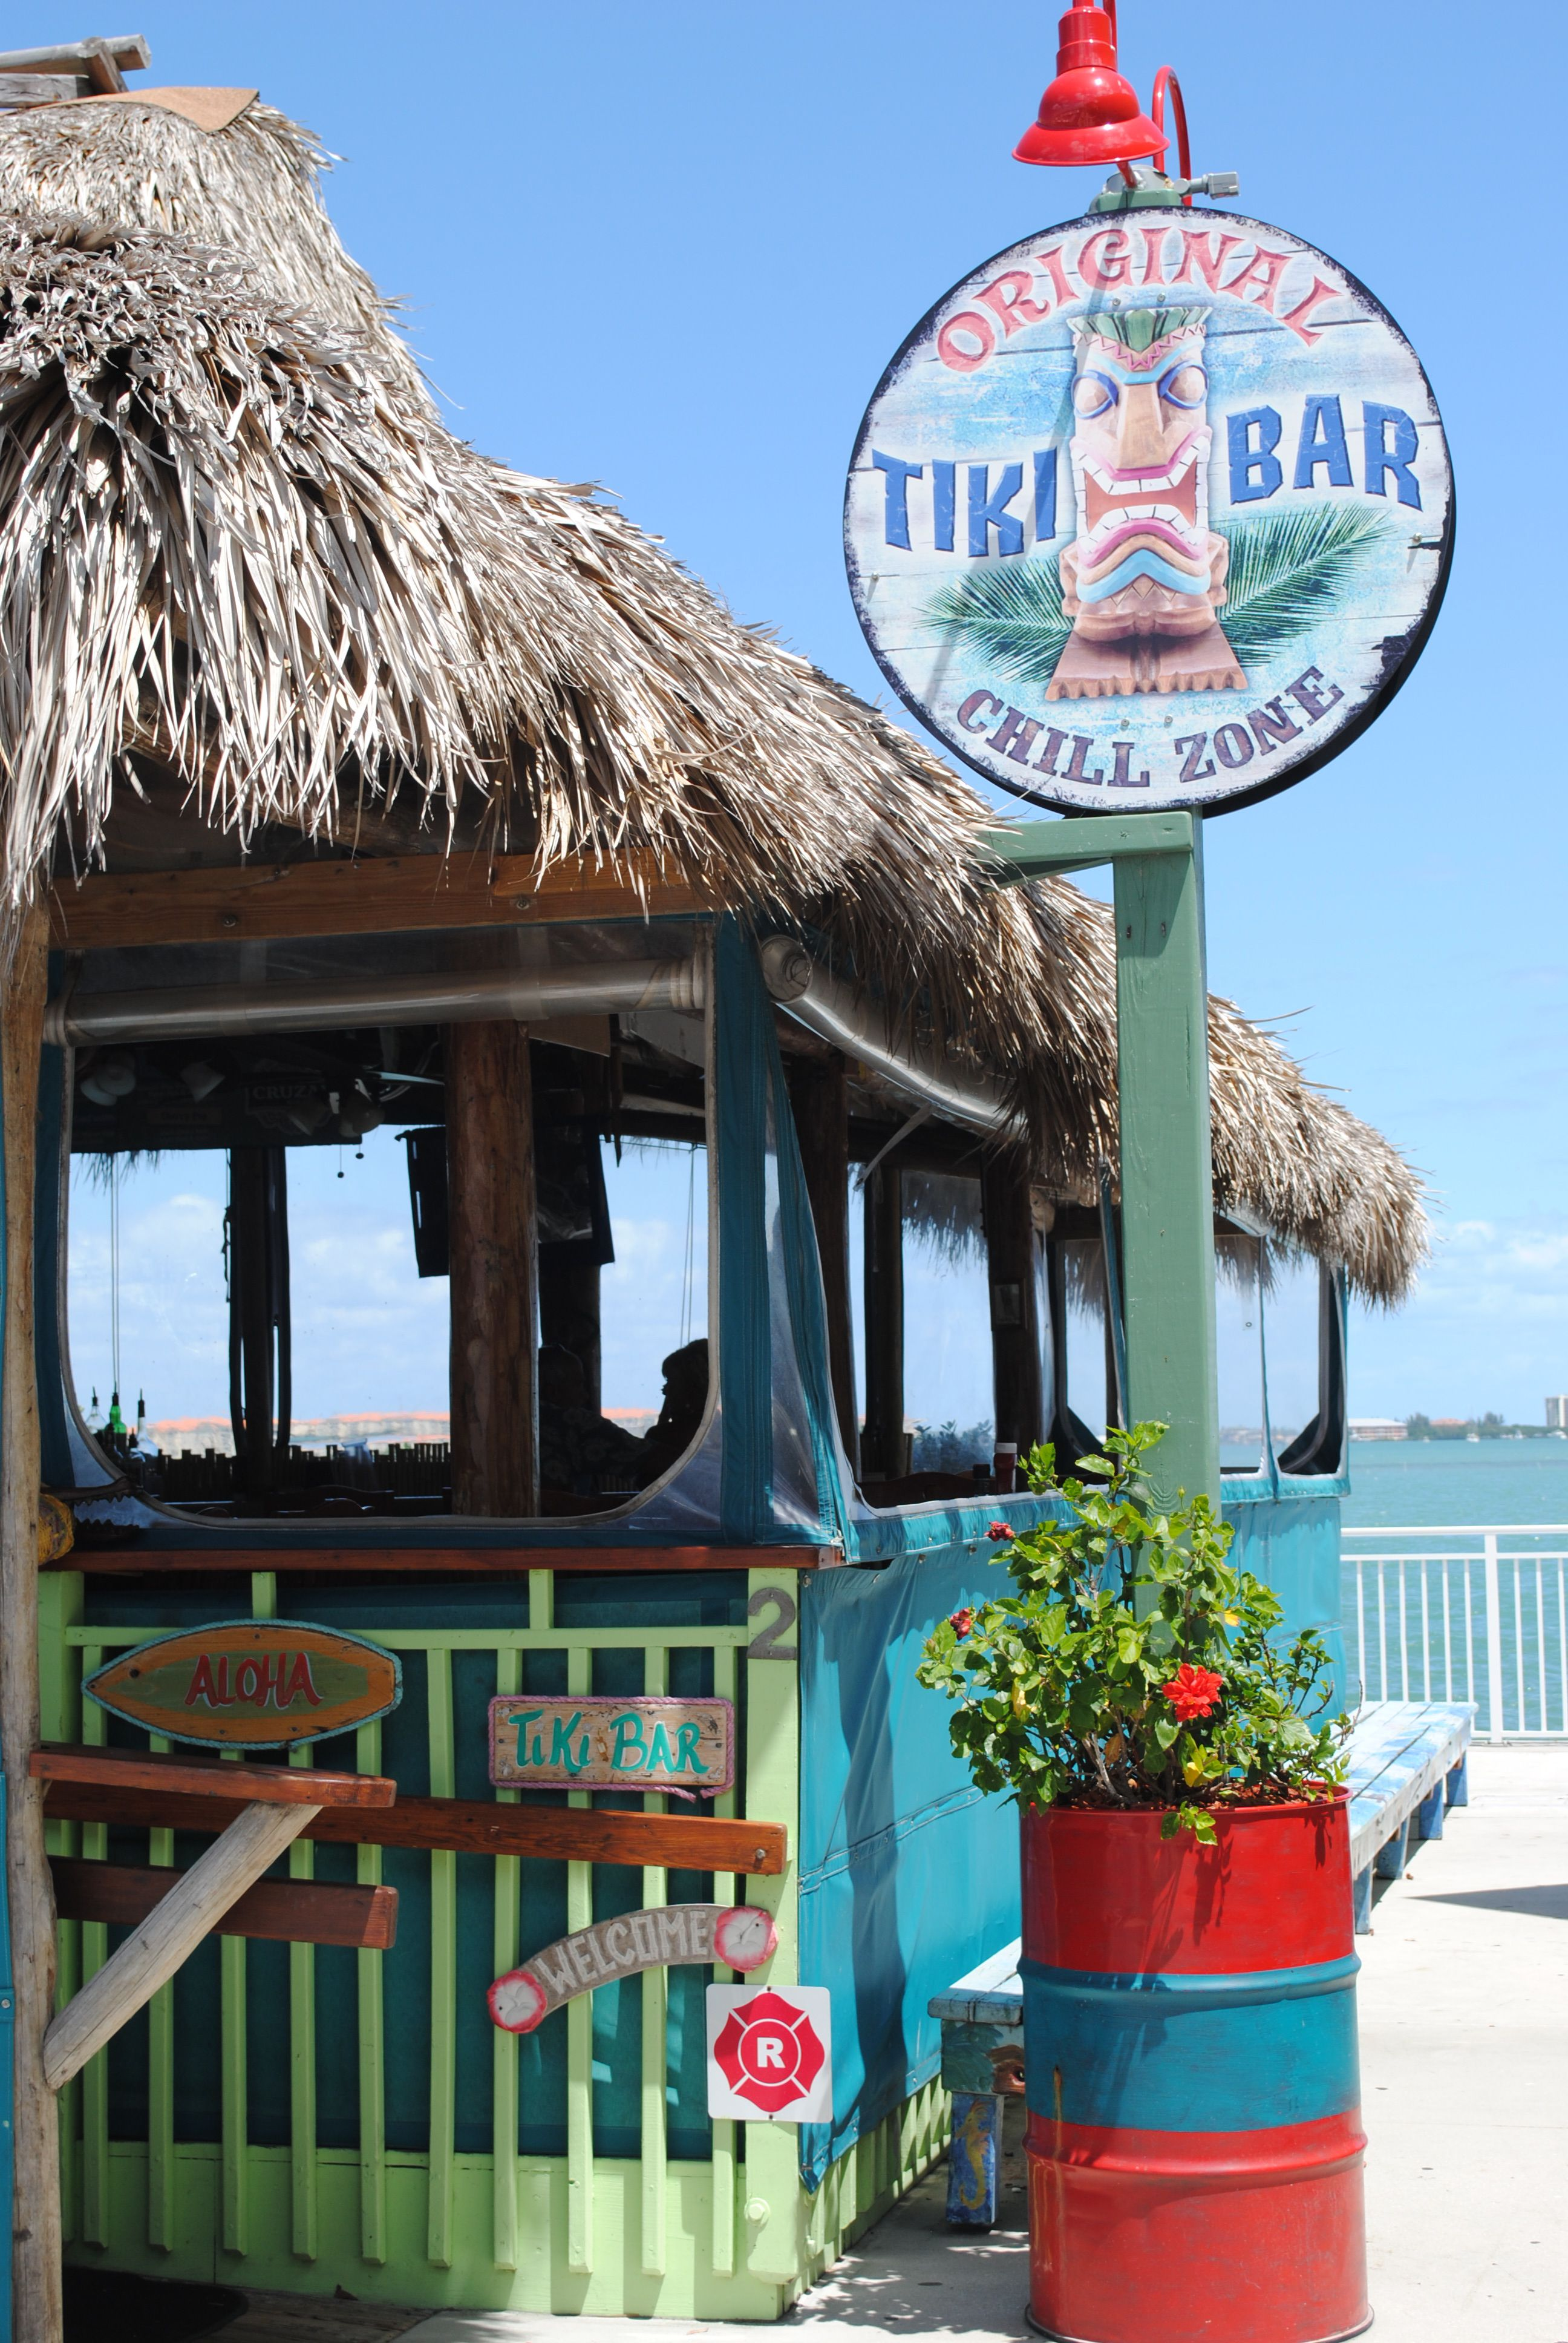 Tiki Bar And Grill, Ft. Pierce